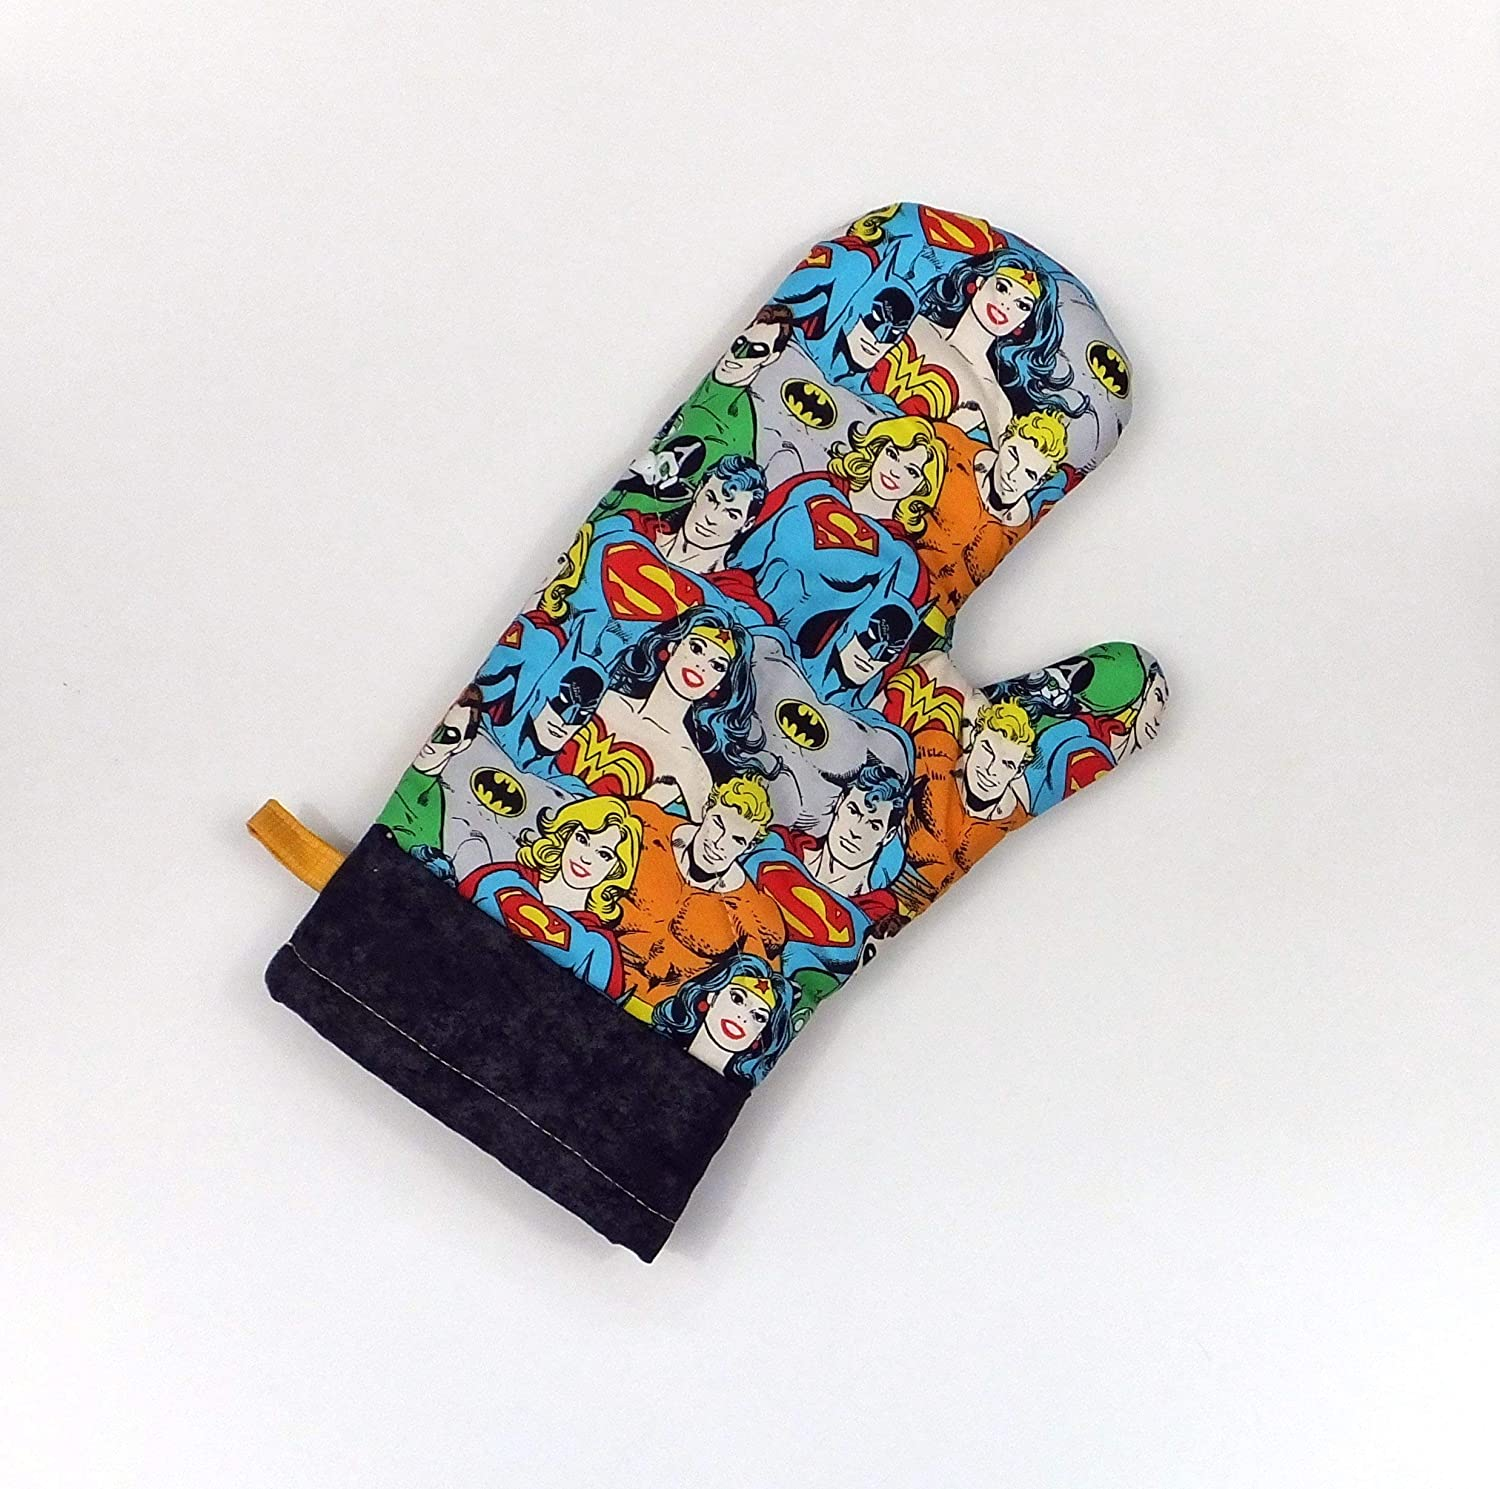 Justice League Oven Mitt